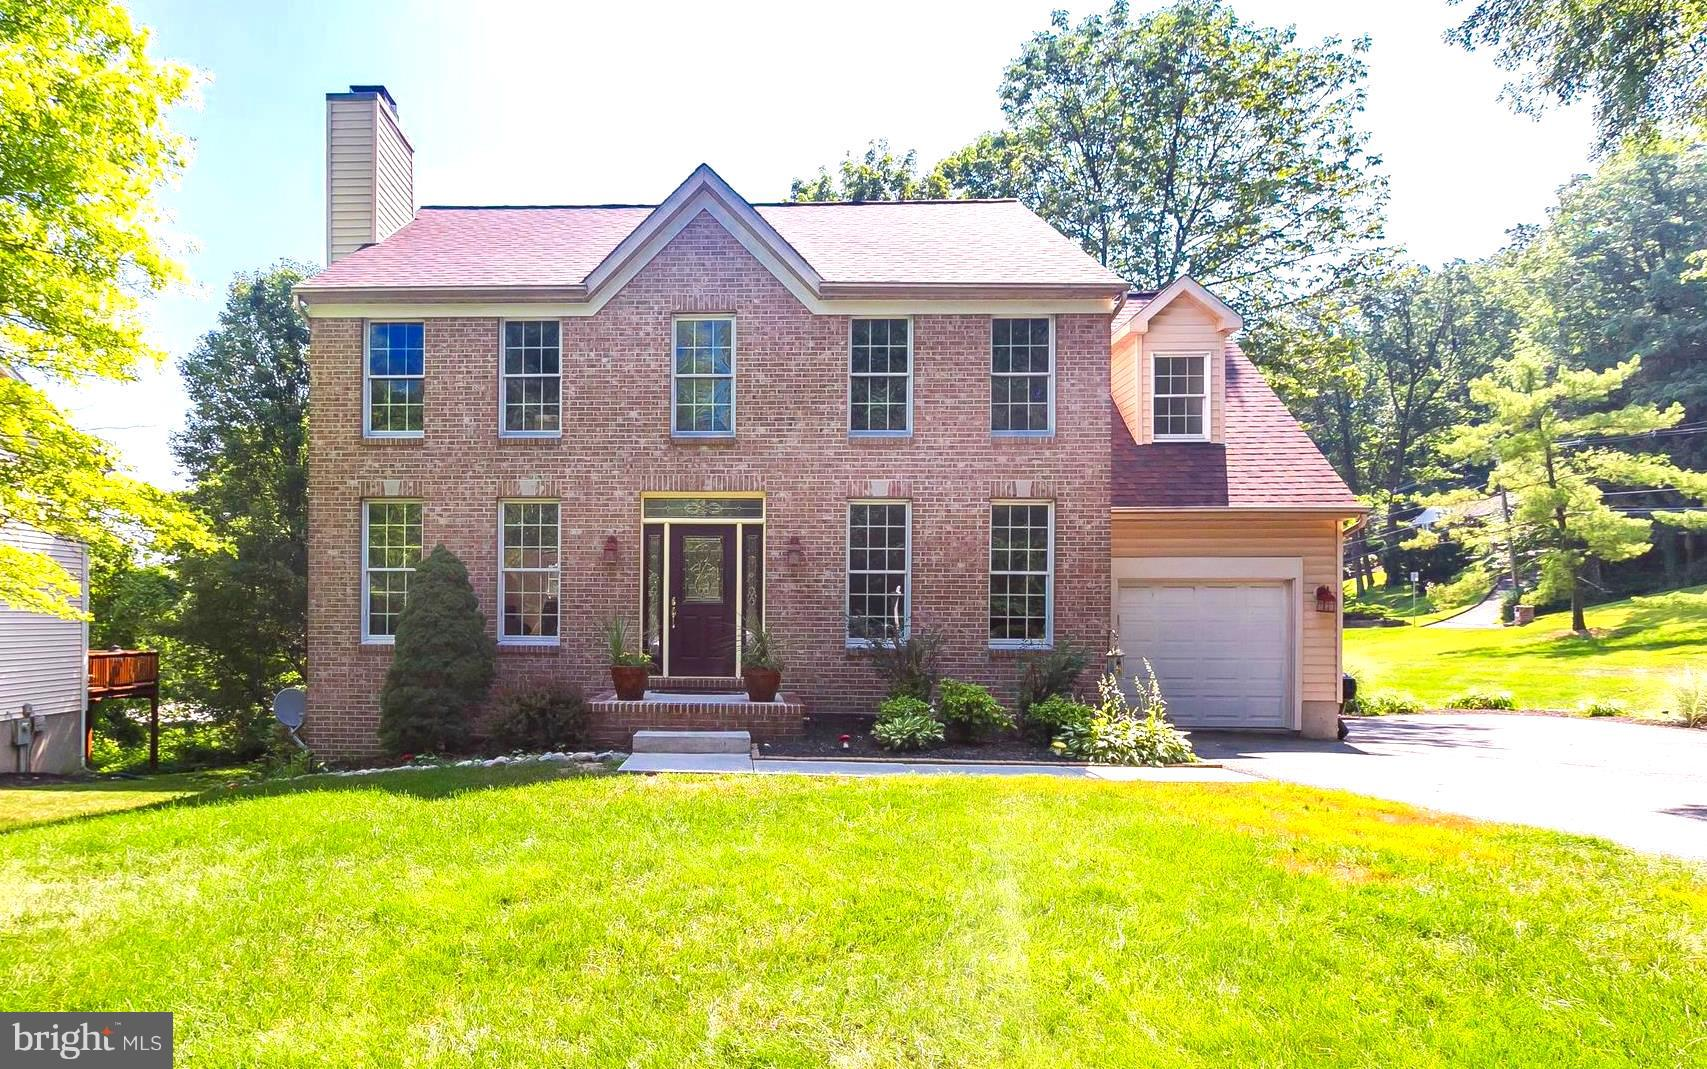 8101 RUXTON CROSSING ROAD, BALTIMORE, MD 21204